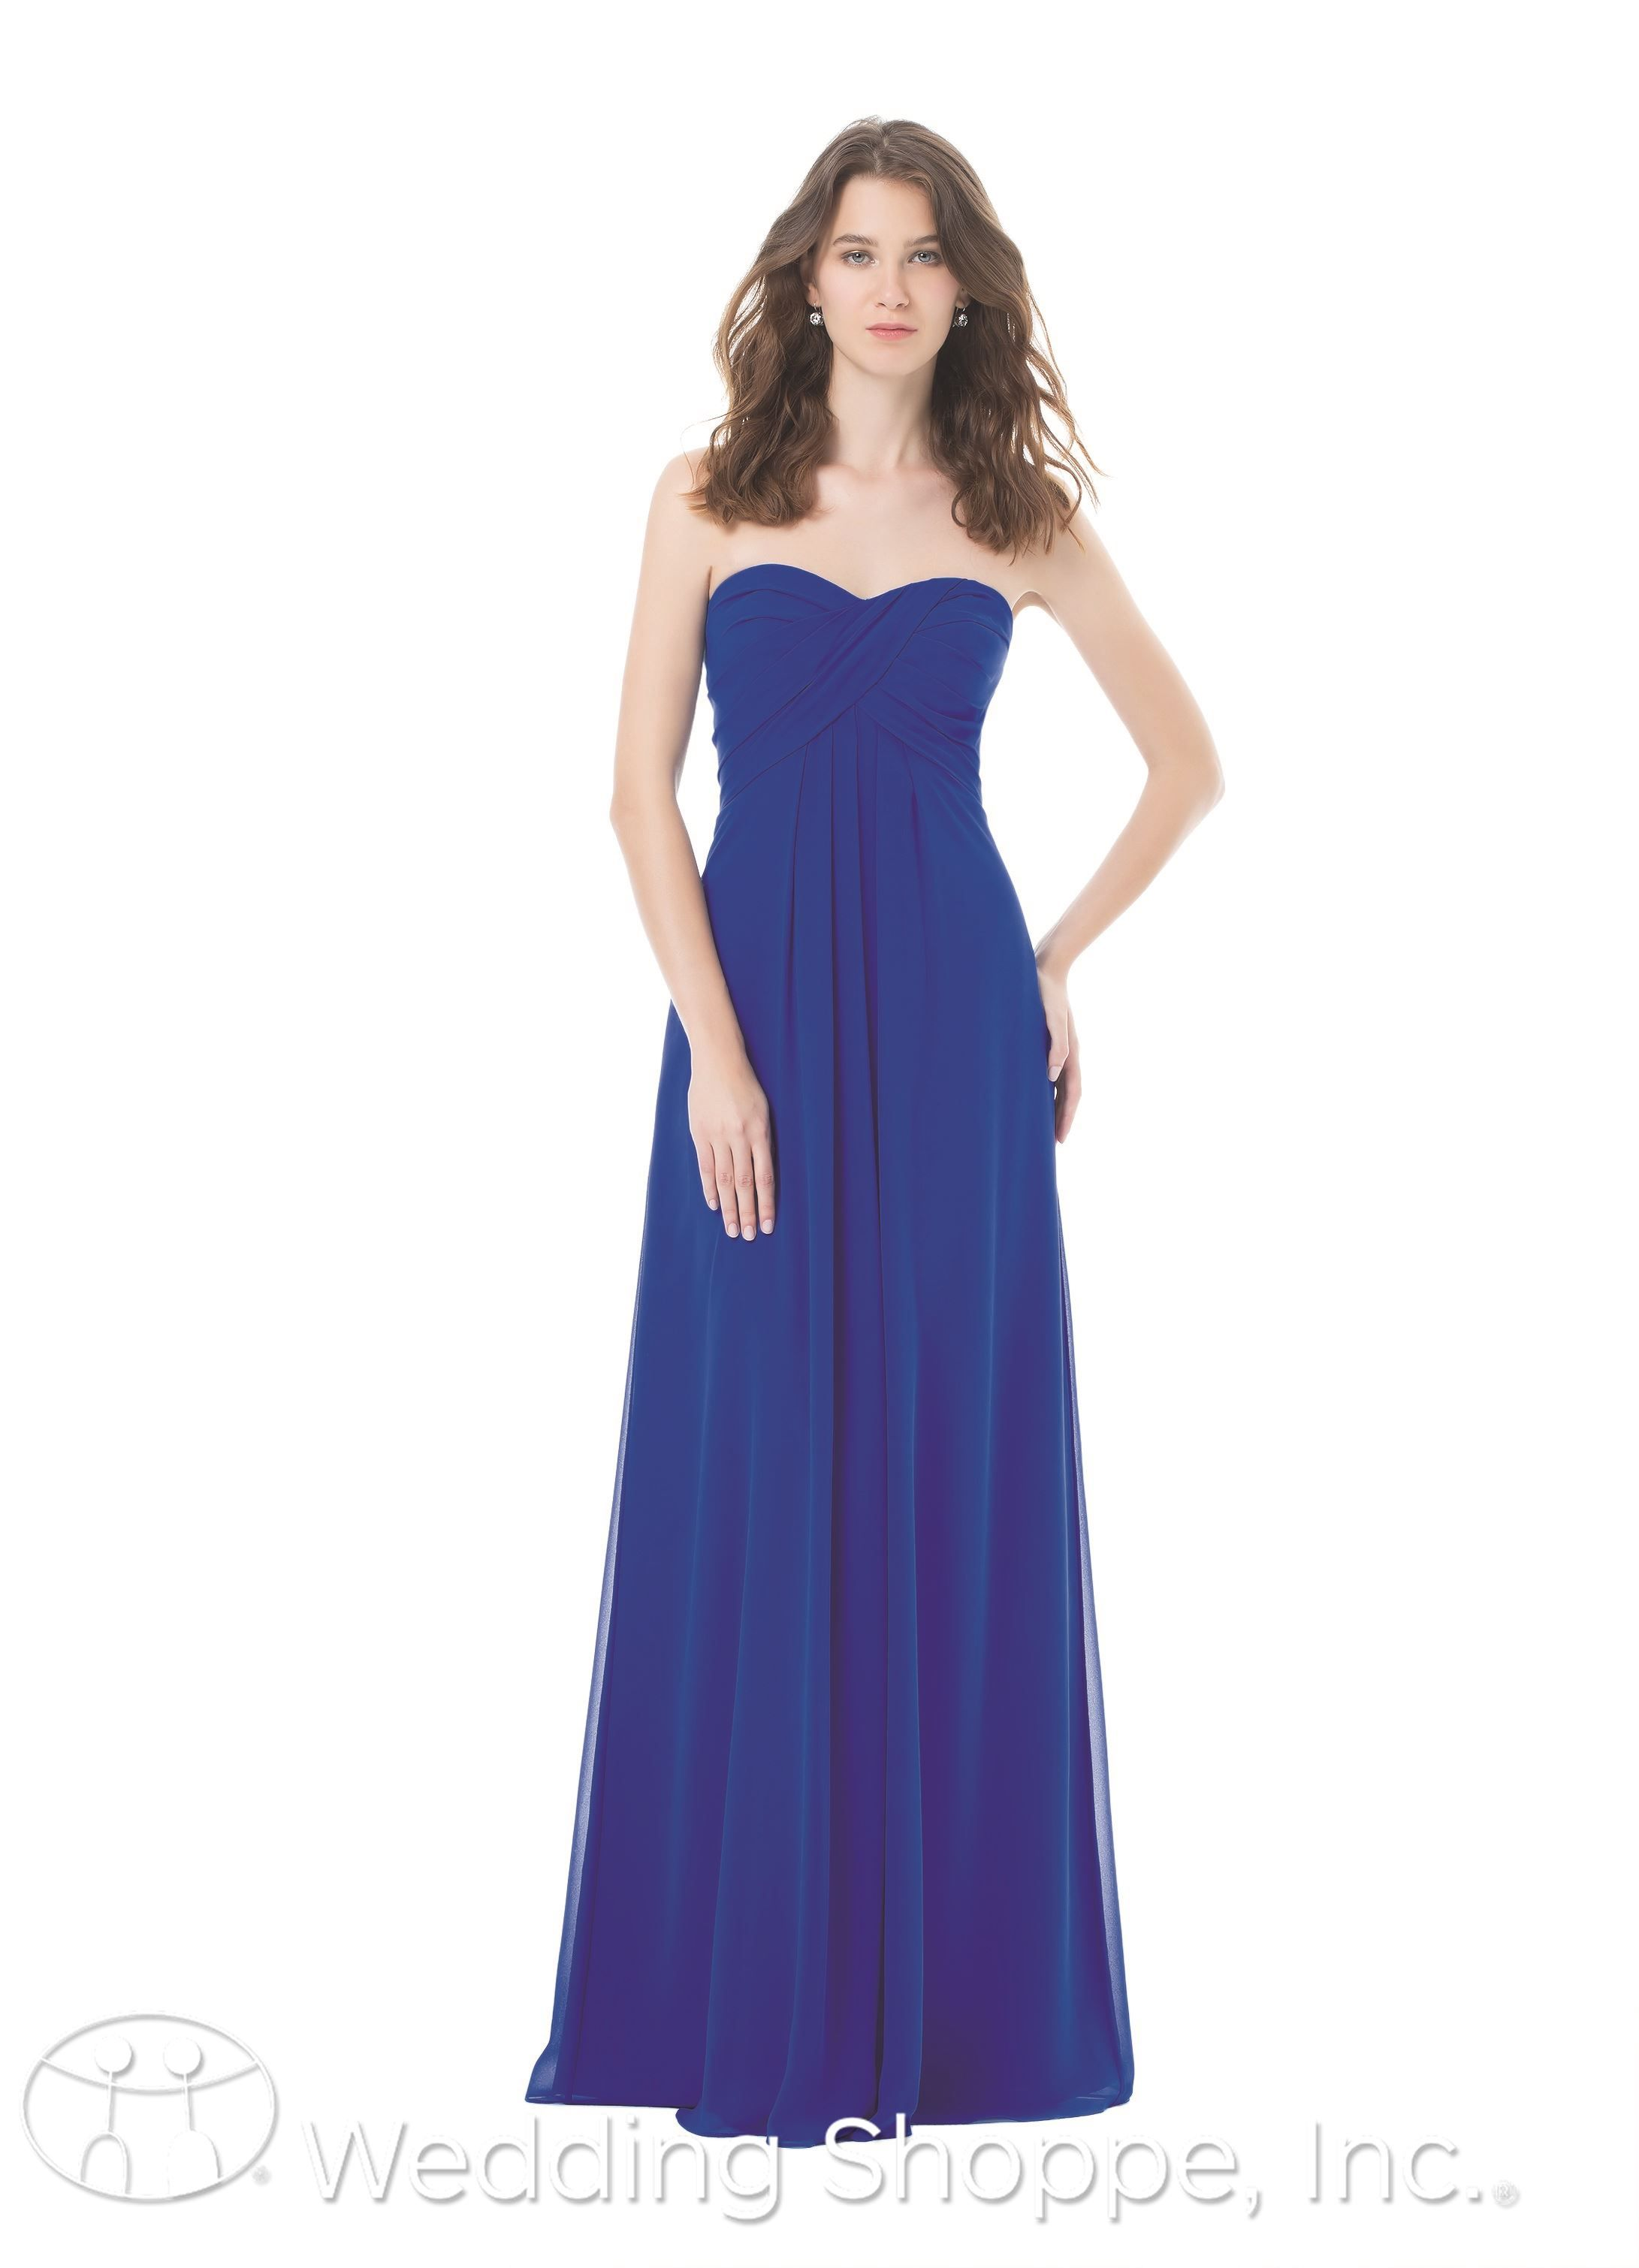 Sleek strapless bridesmaid dress member board bride bridal sleek strapless bridesmaid dress ombrellifo Image collections